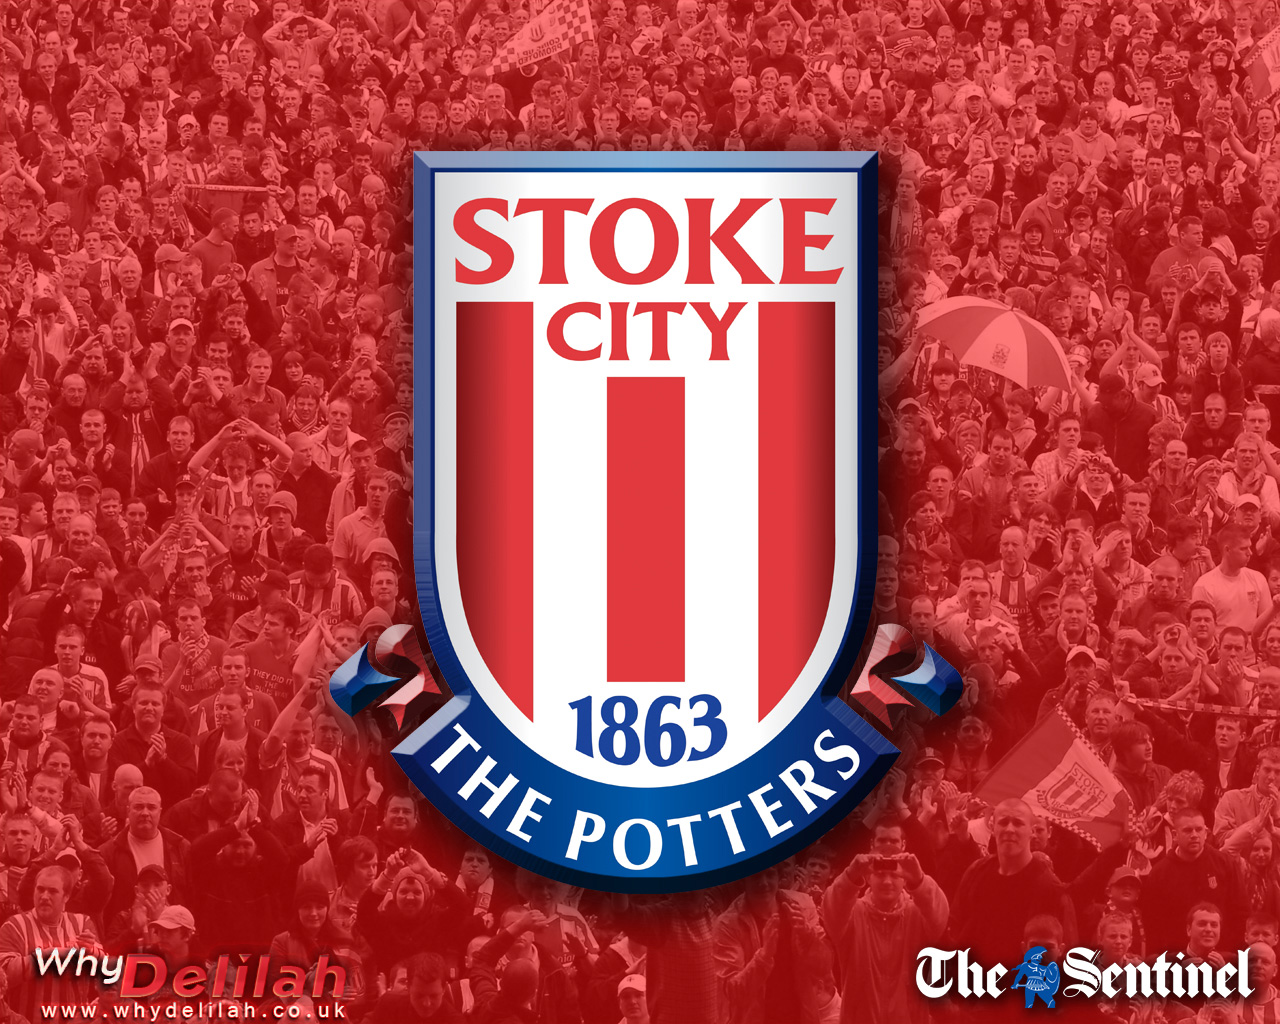 http://2.bp.blogspot.com/-PB8m0eEsmV0/Th1j76ZjylI/AAAAAAAABDQ/hHTHt5n_tm0/s1600/Stoke+City+Wallpaper.jpg